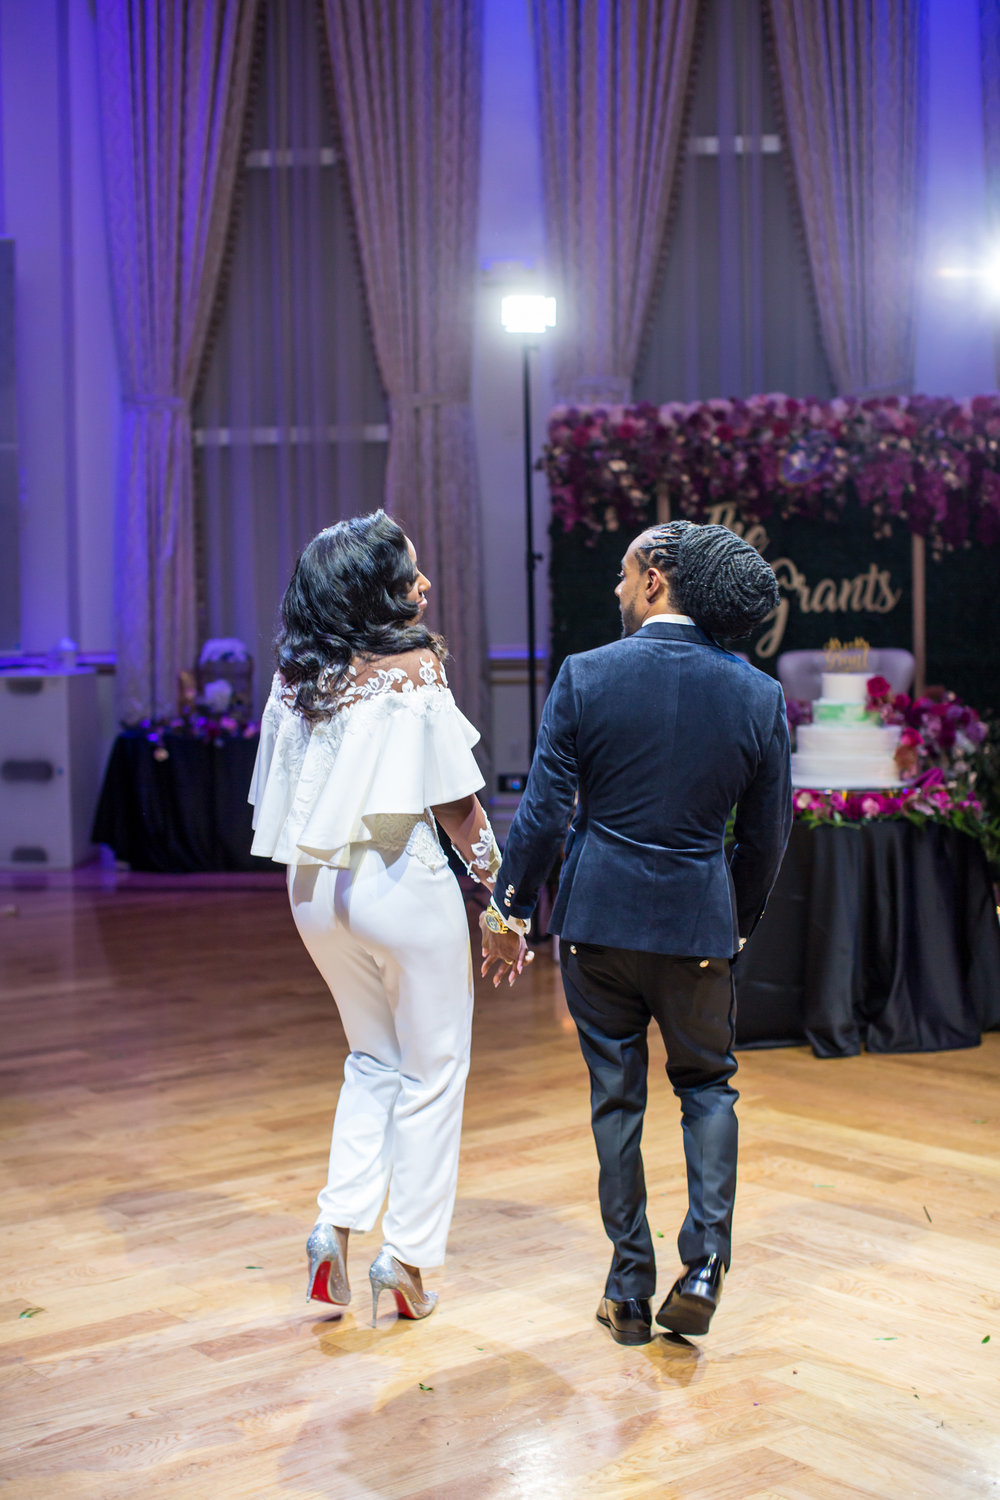 victorious-events-nyc-031-romie-kamali-tides-estate-wedding-nana-annan.jpg